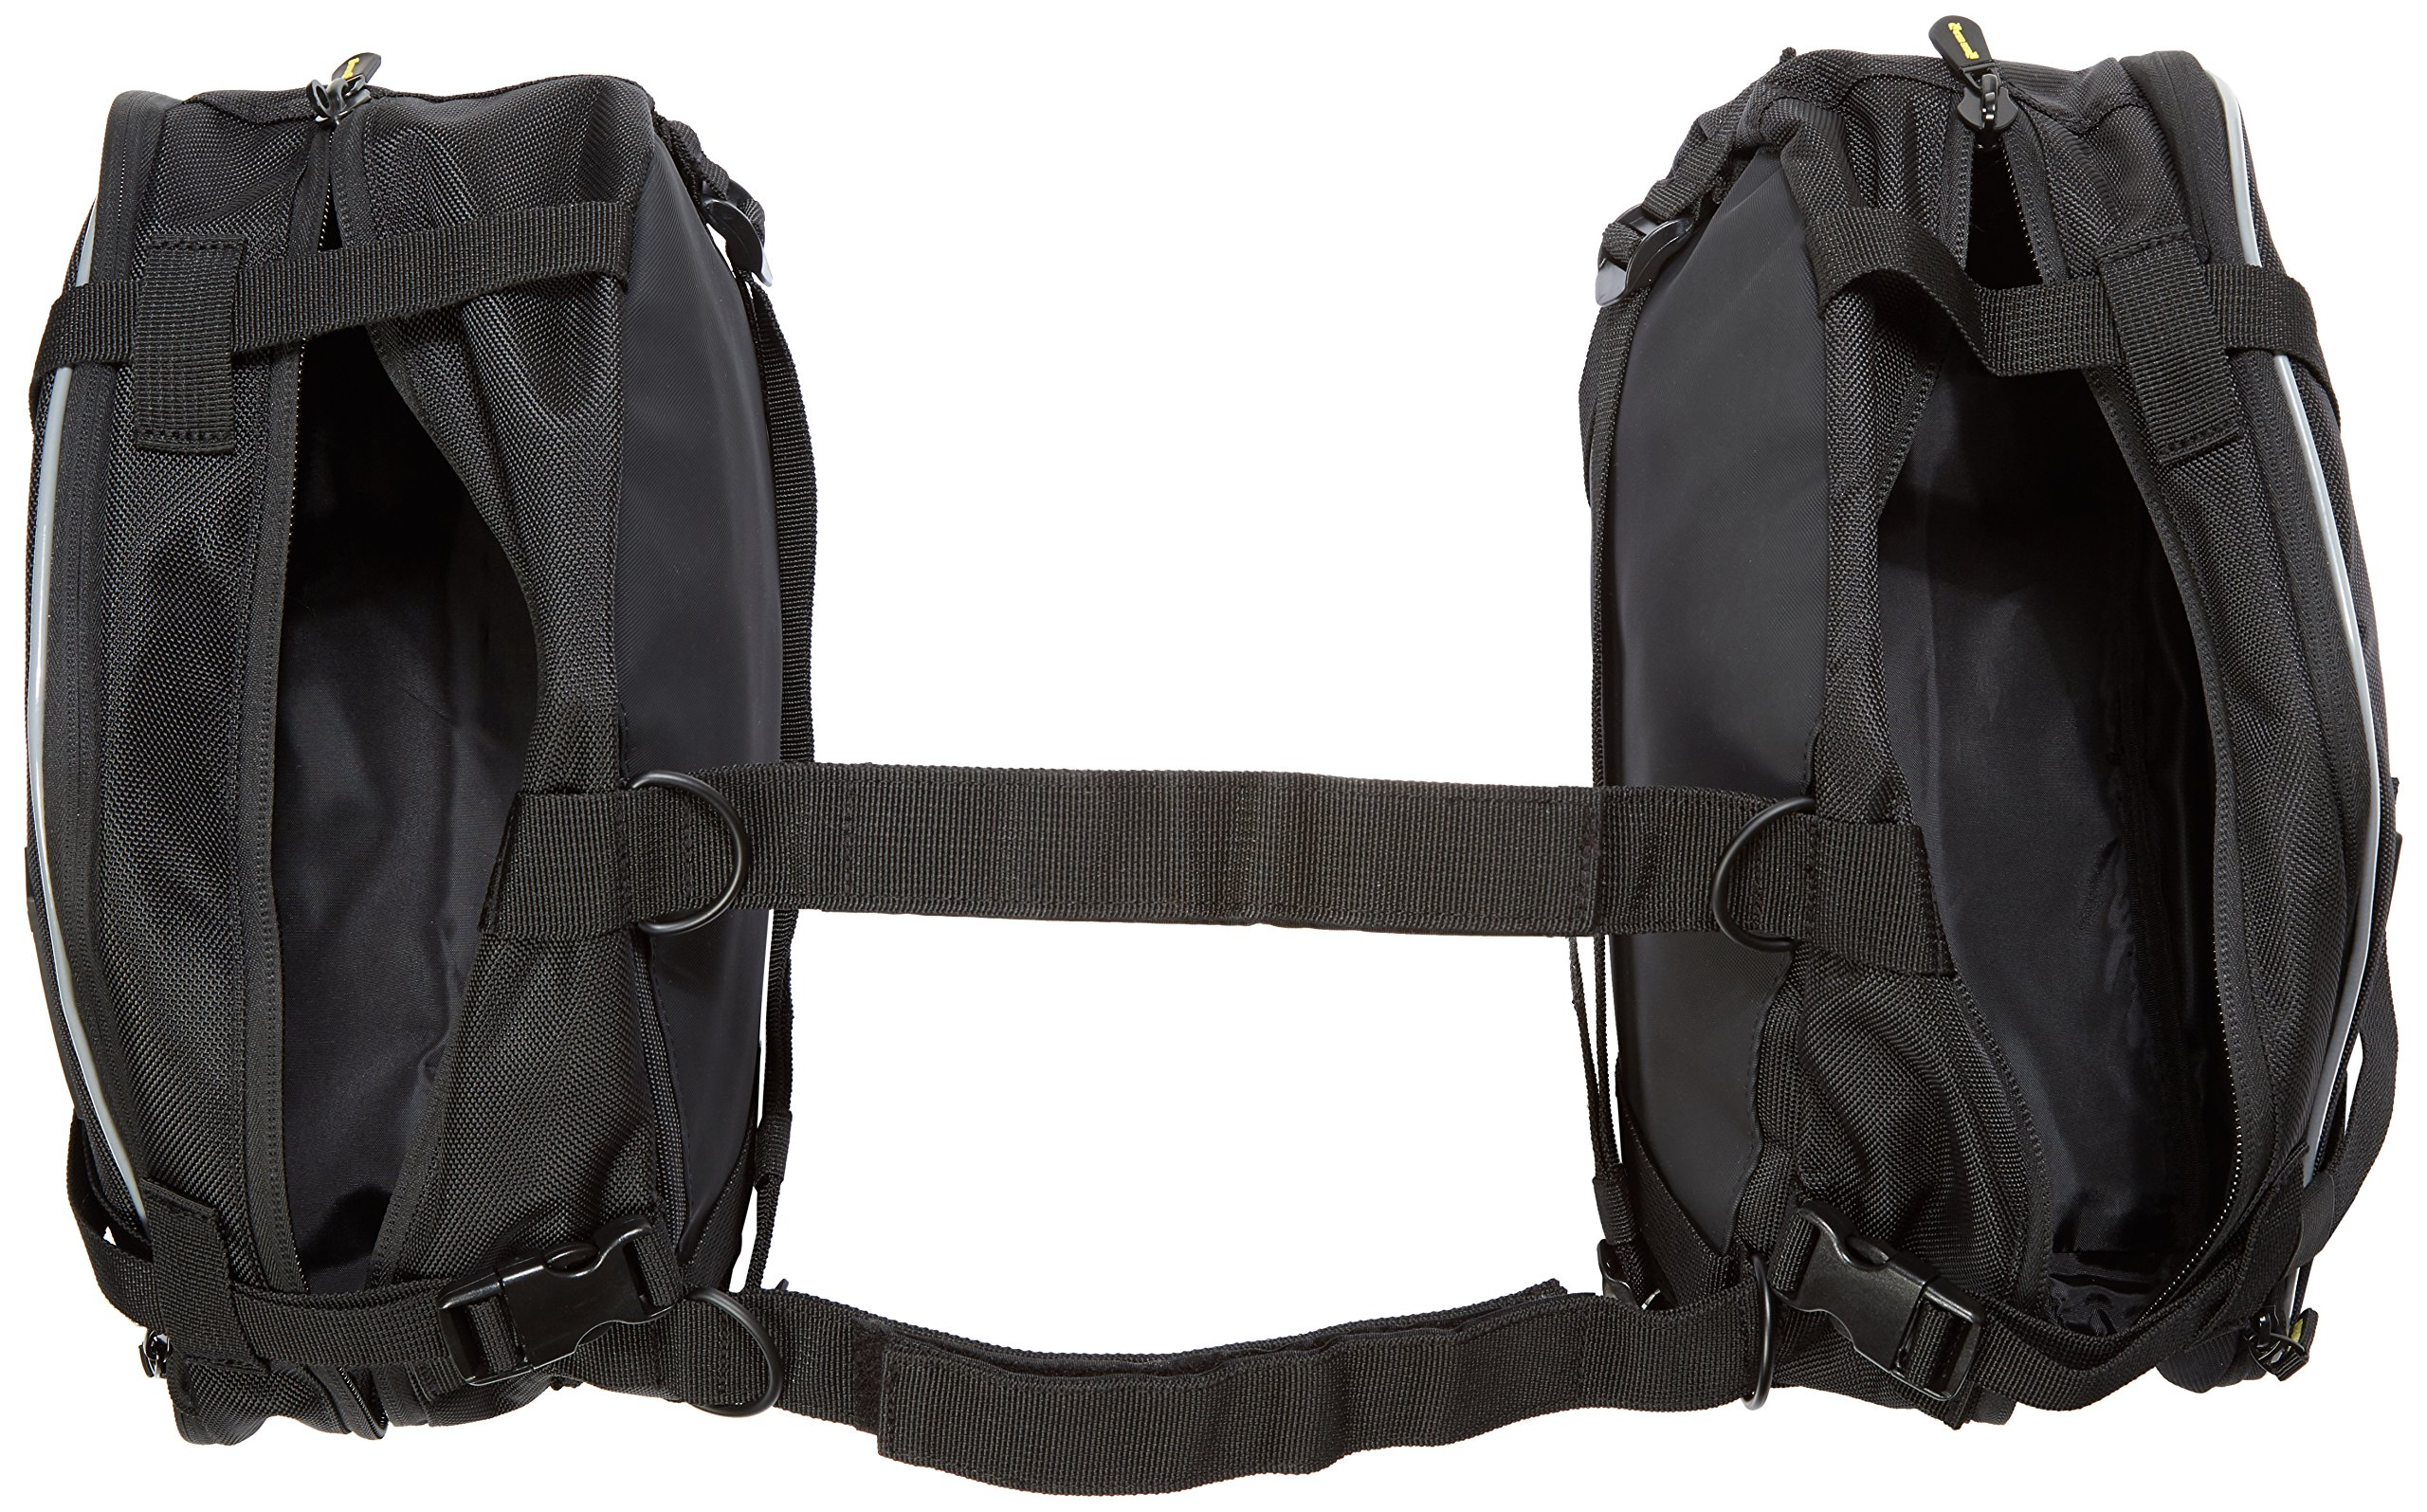 Nelson-Rigg RG-020 Black Dual Sport Motorcycle Saddlebag by Nelson-Rigg (Image #5)